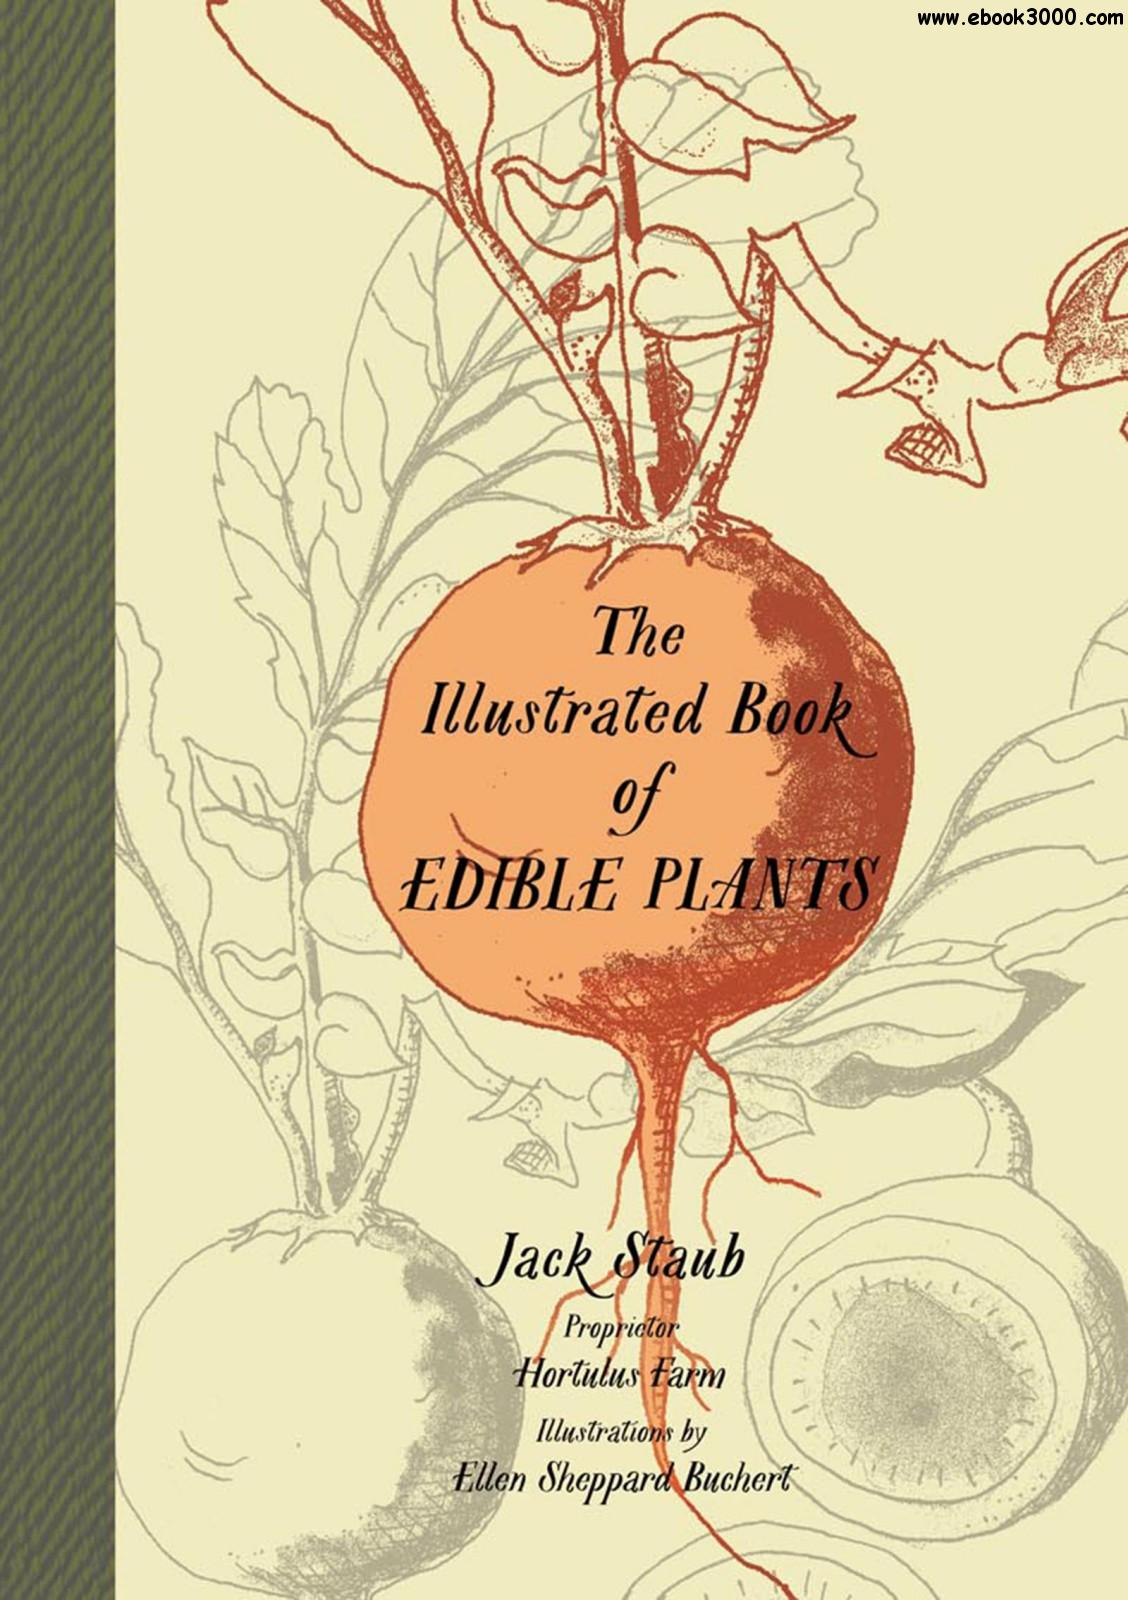 Illustrated Book of Edible Plants